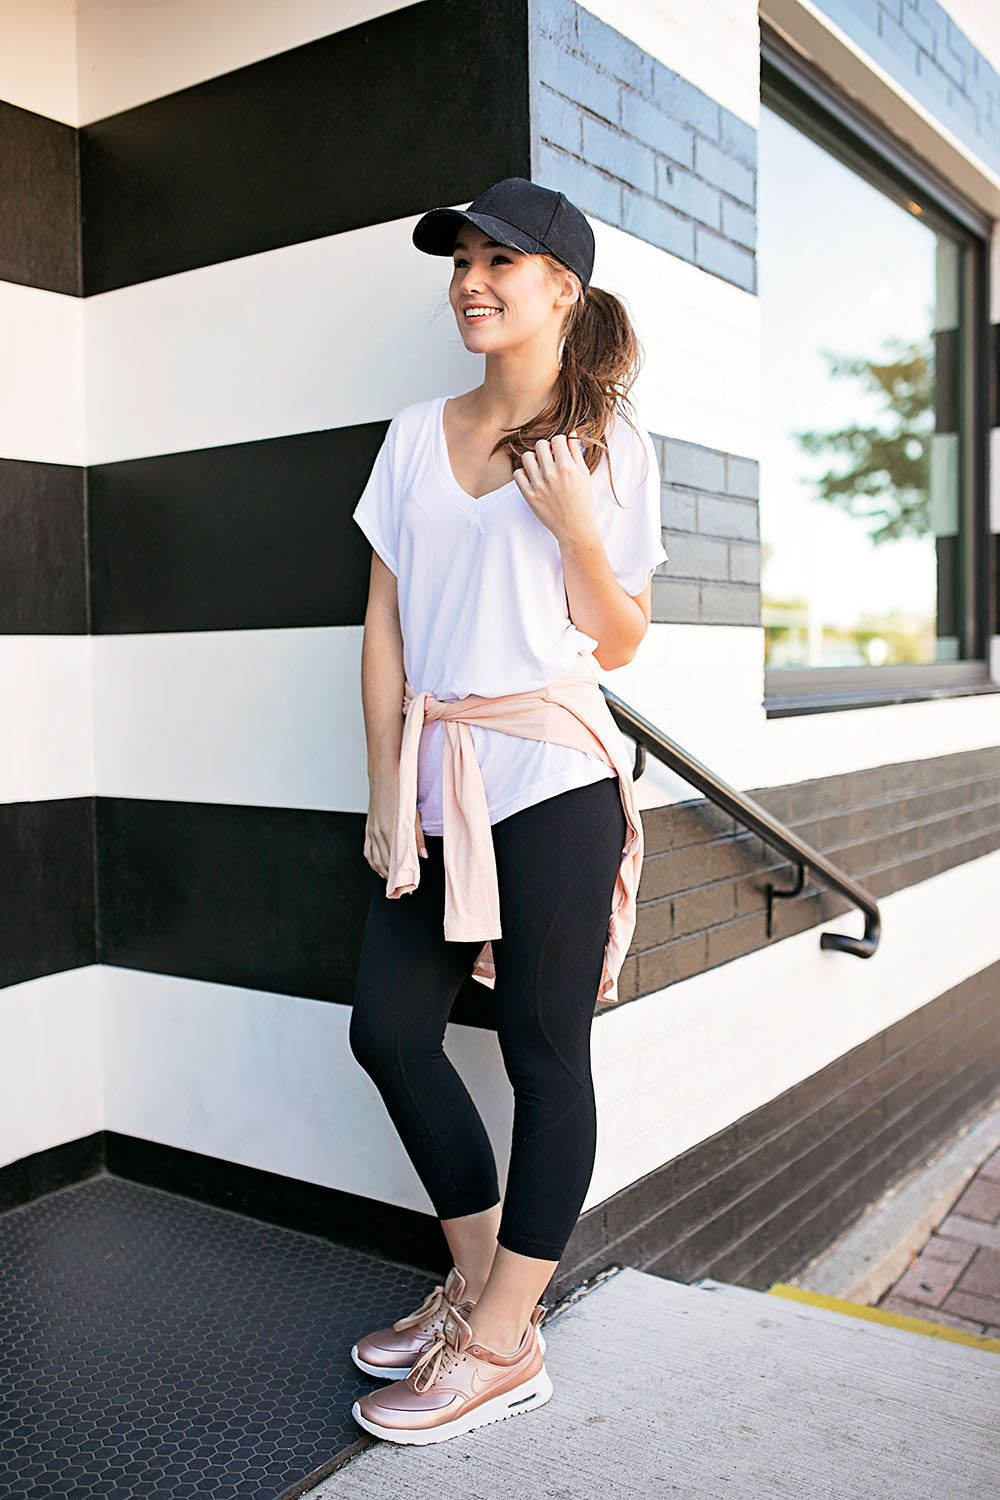 Metallic sneakers outfit